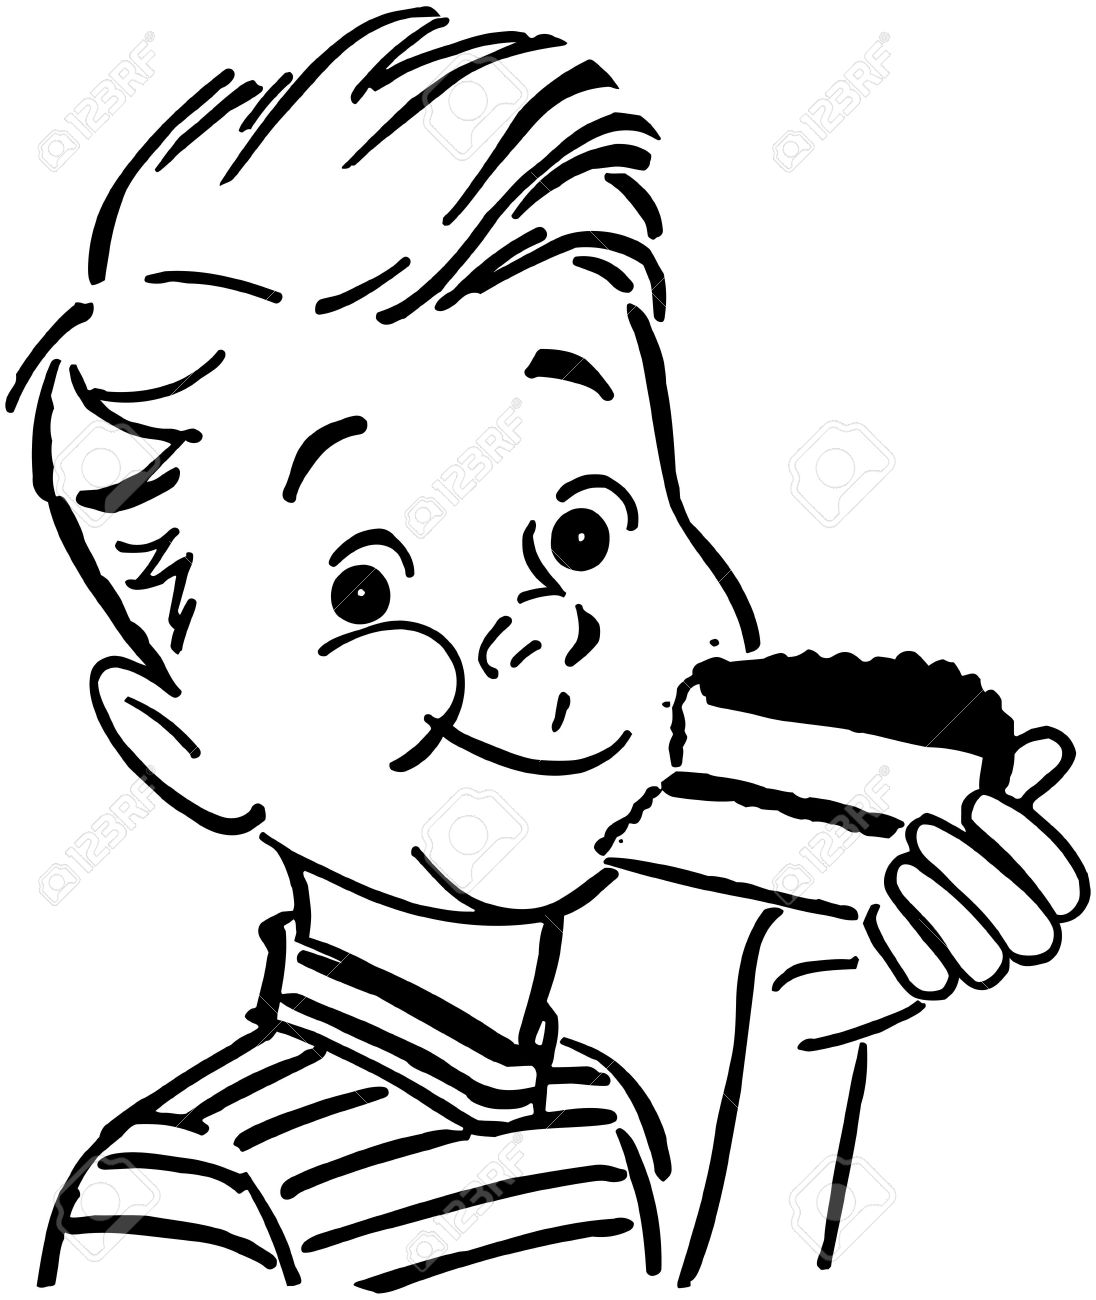 Cake  black and white eating cake clip art